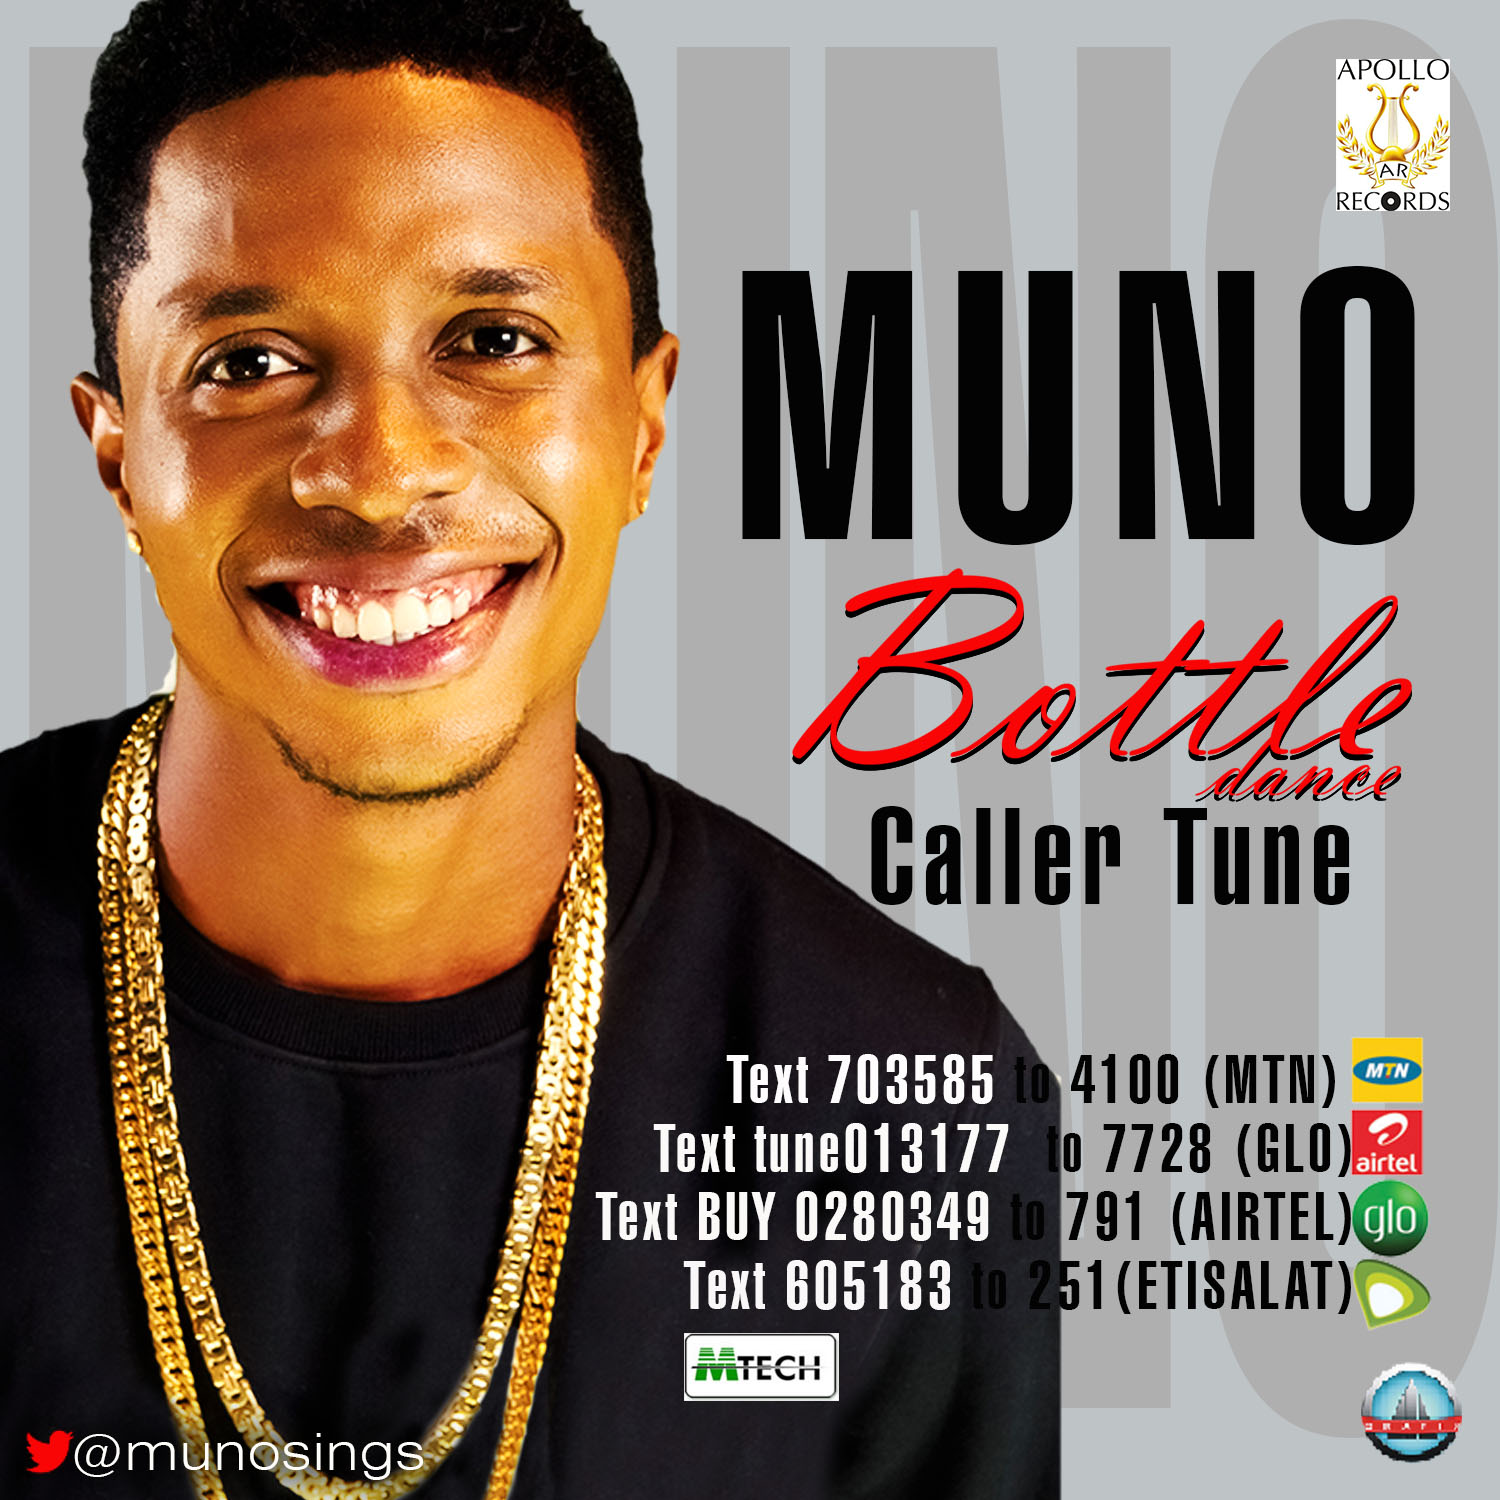 MUNO Bottle Dance caller Tune